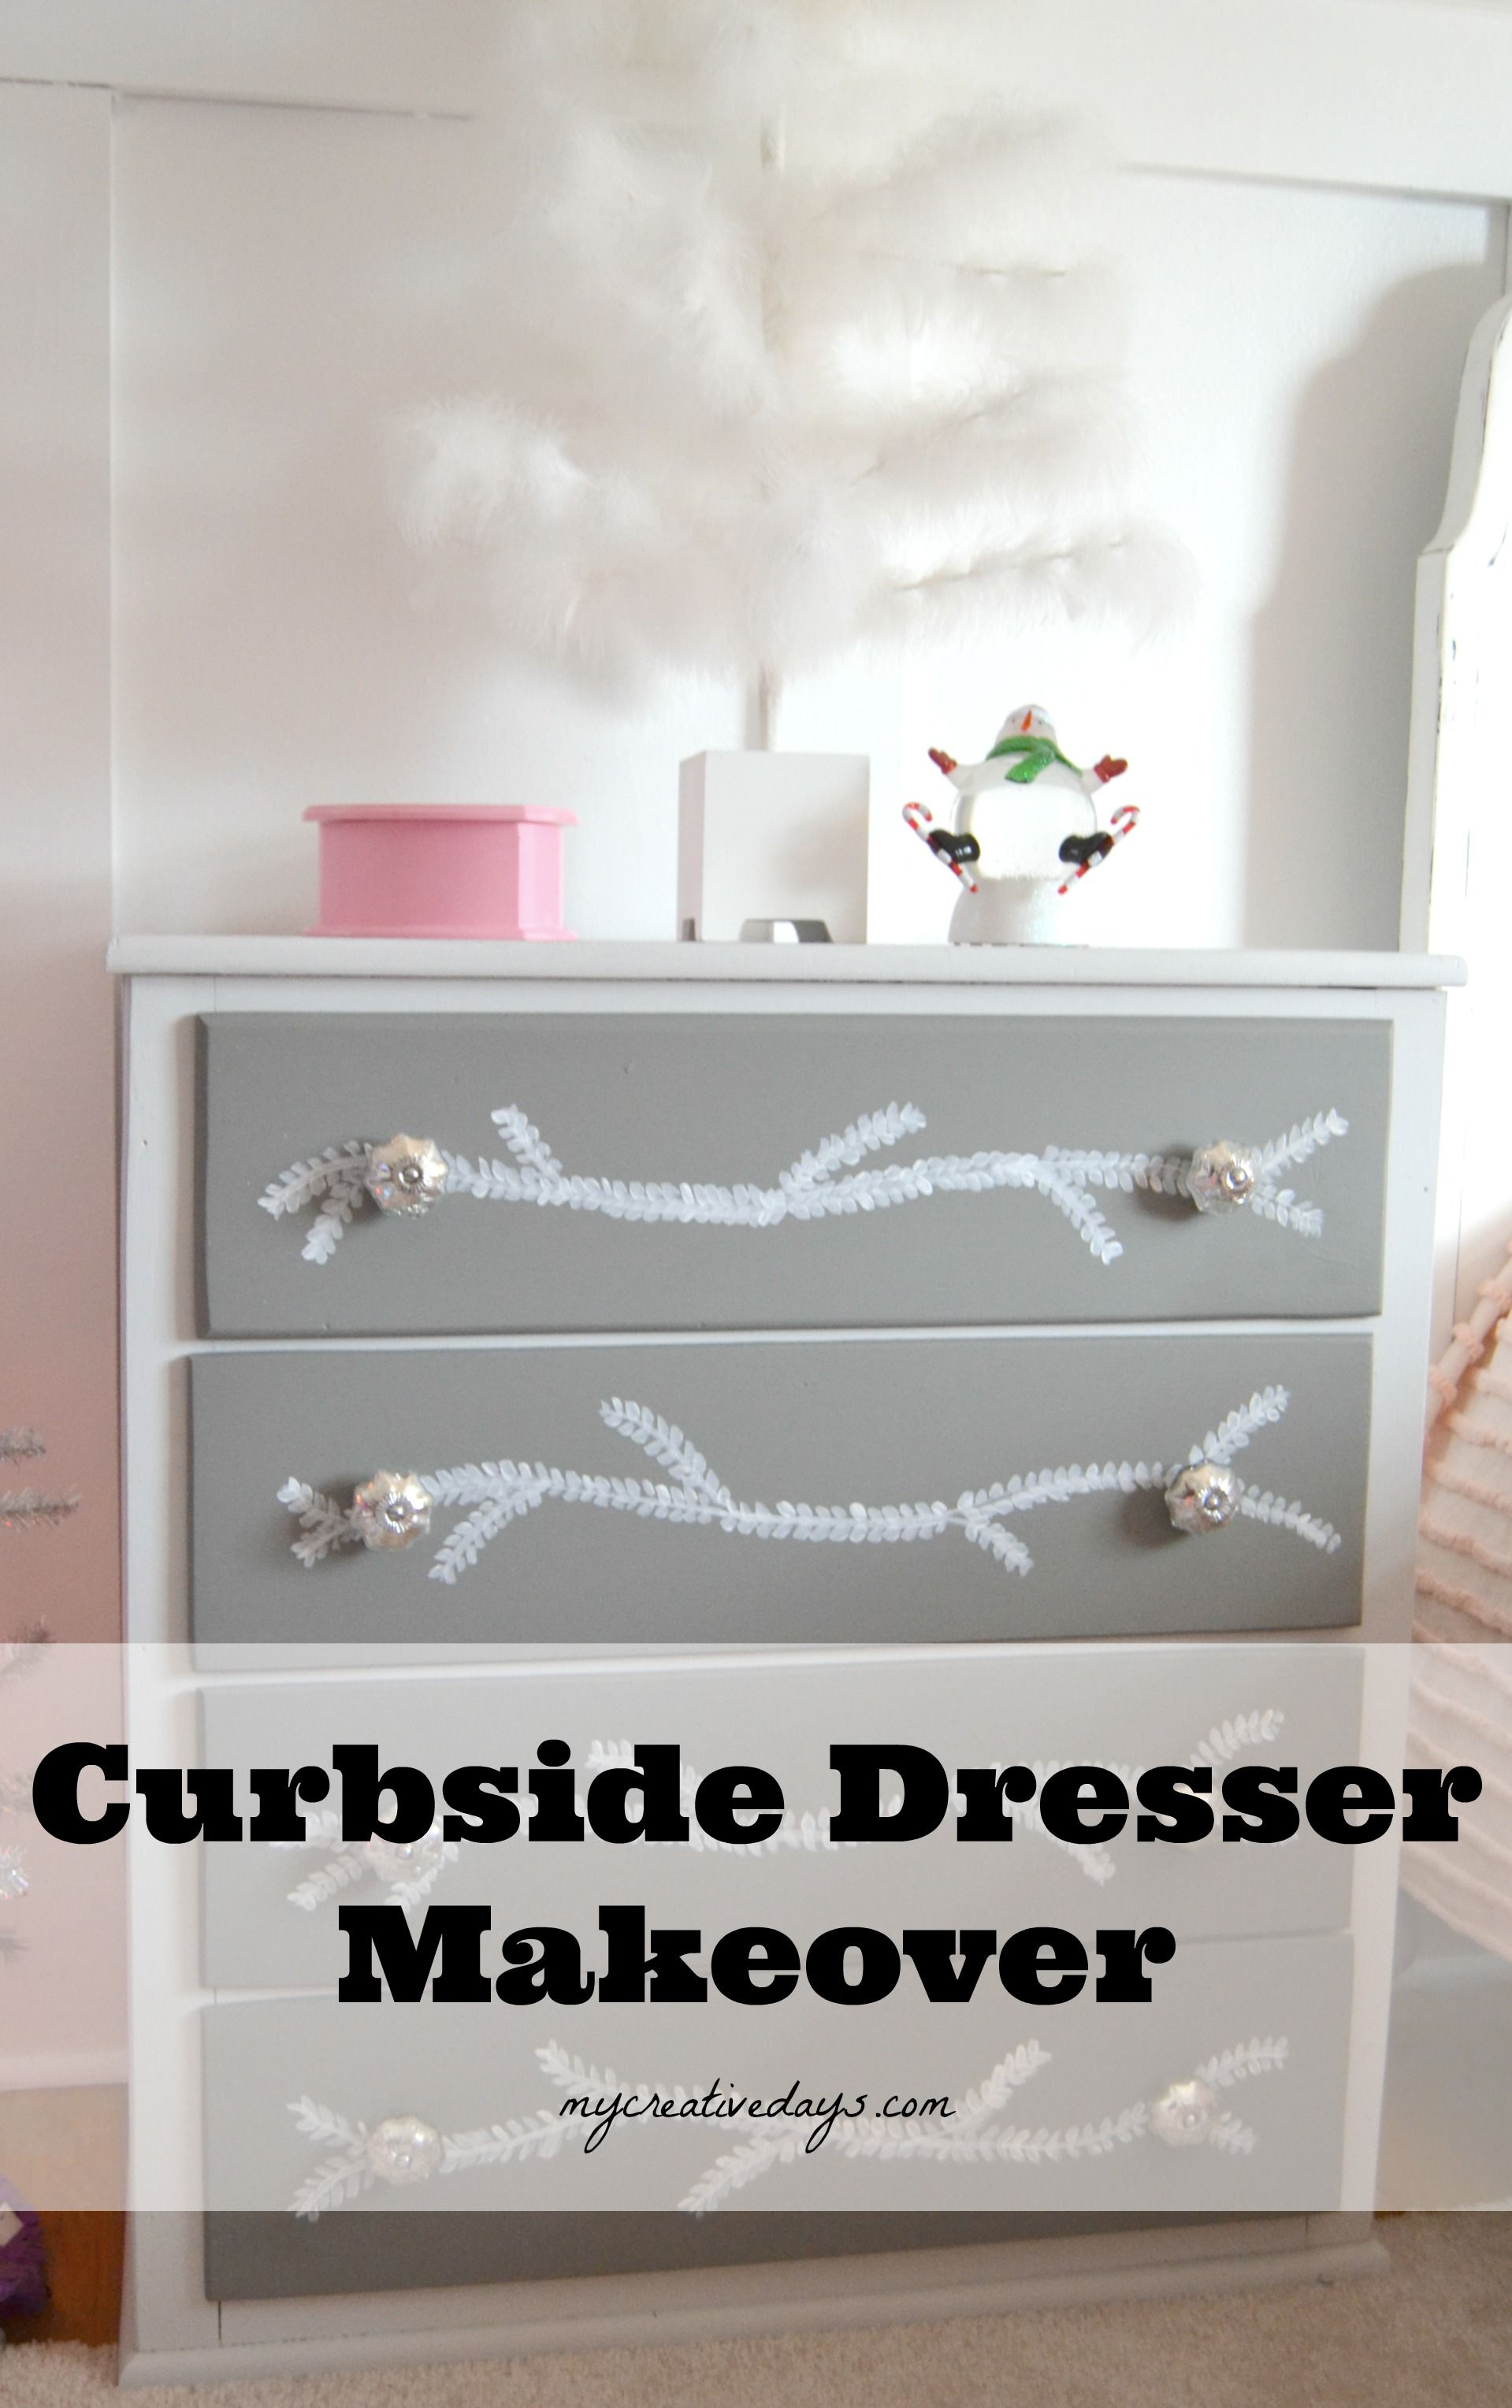 Curbside Dresser Makeover. This curbside dresser has been transformed into a beautiful piece with some paint and new knobs. mycreativedays.com